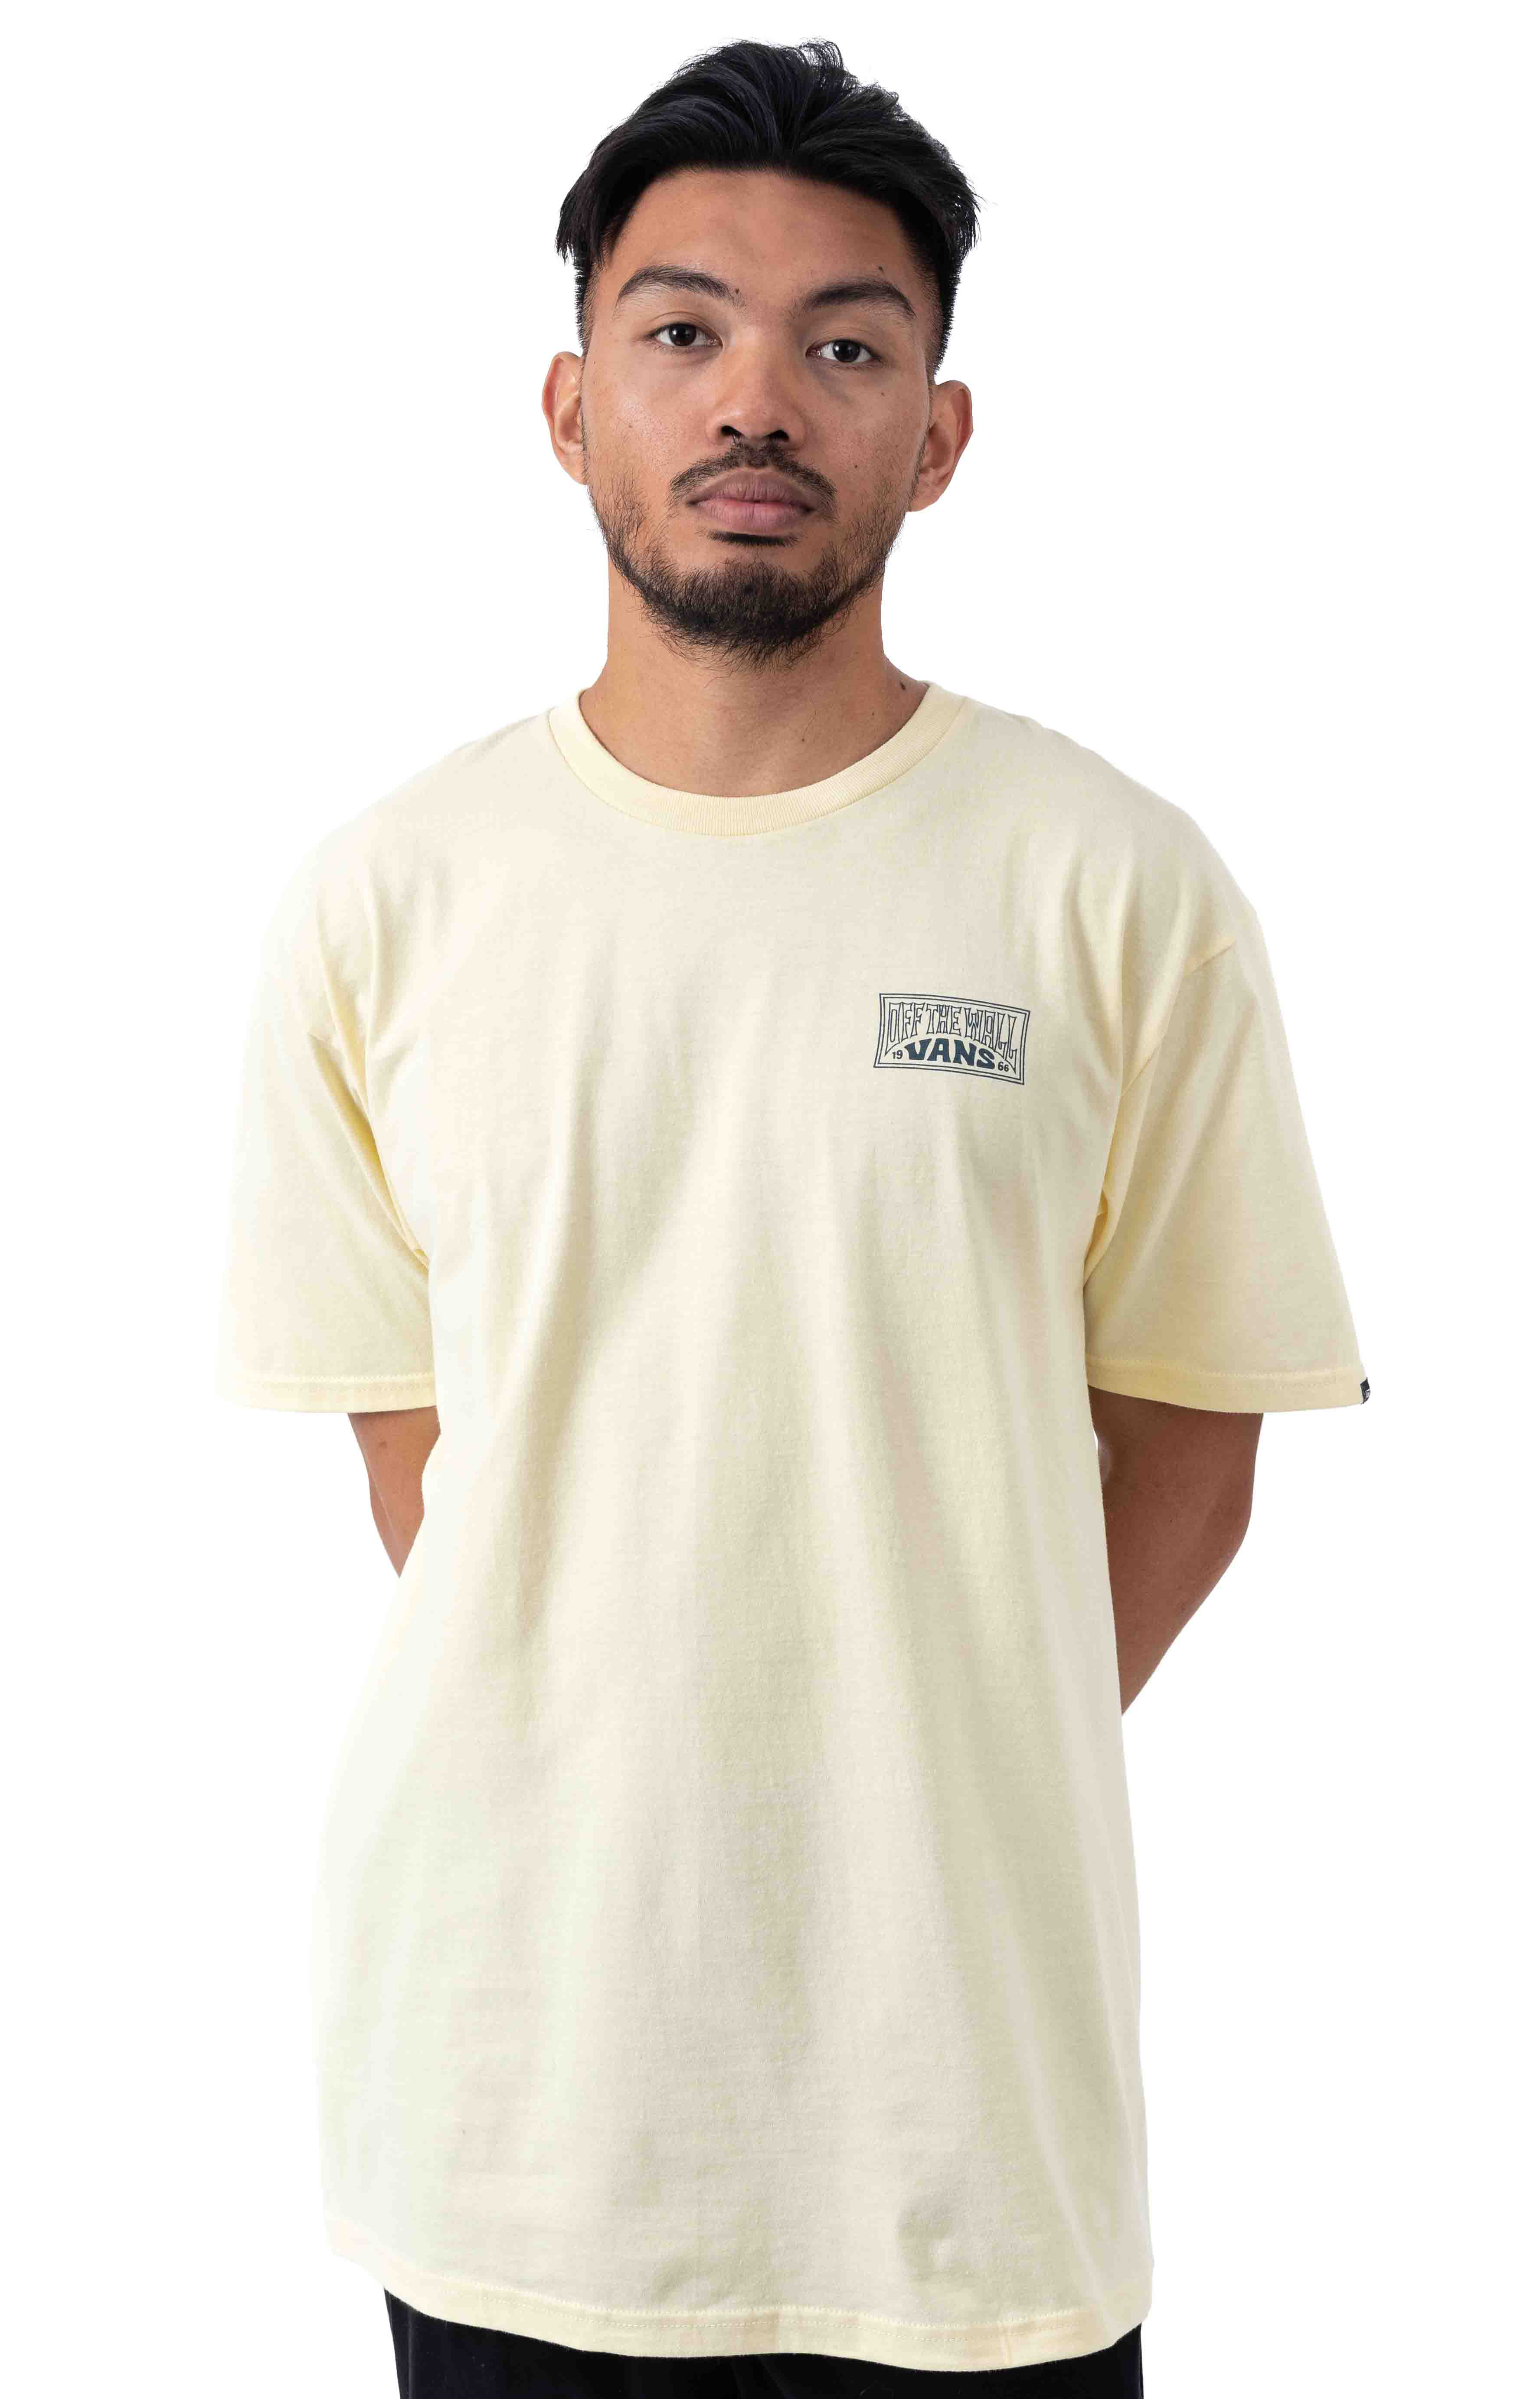 Rubber Co. T-Shirt - Double Cream  2